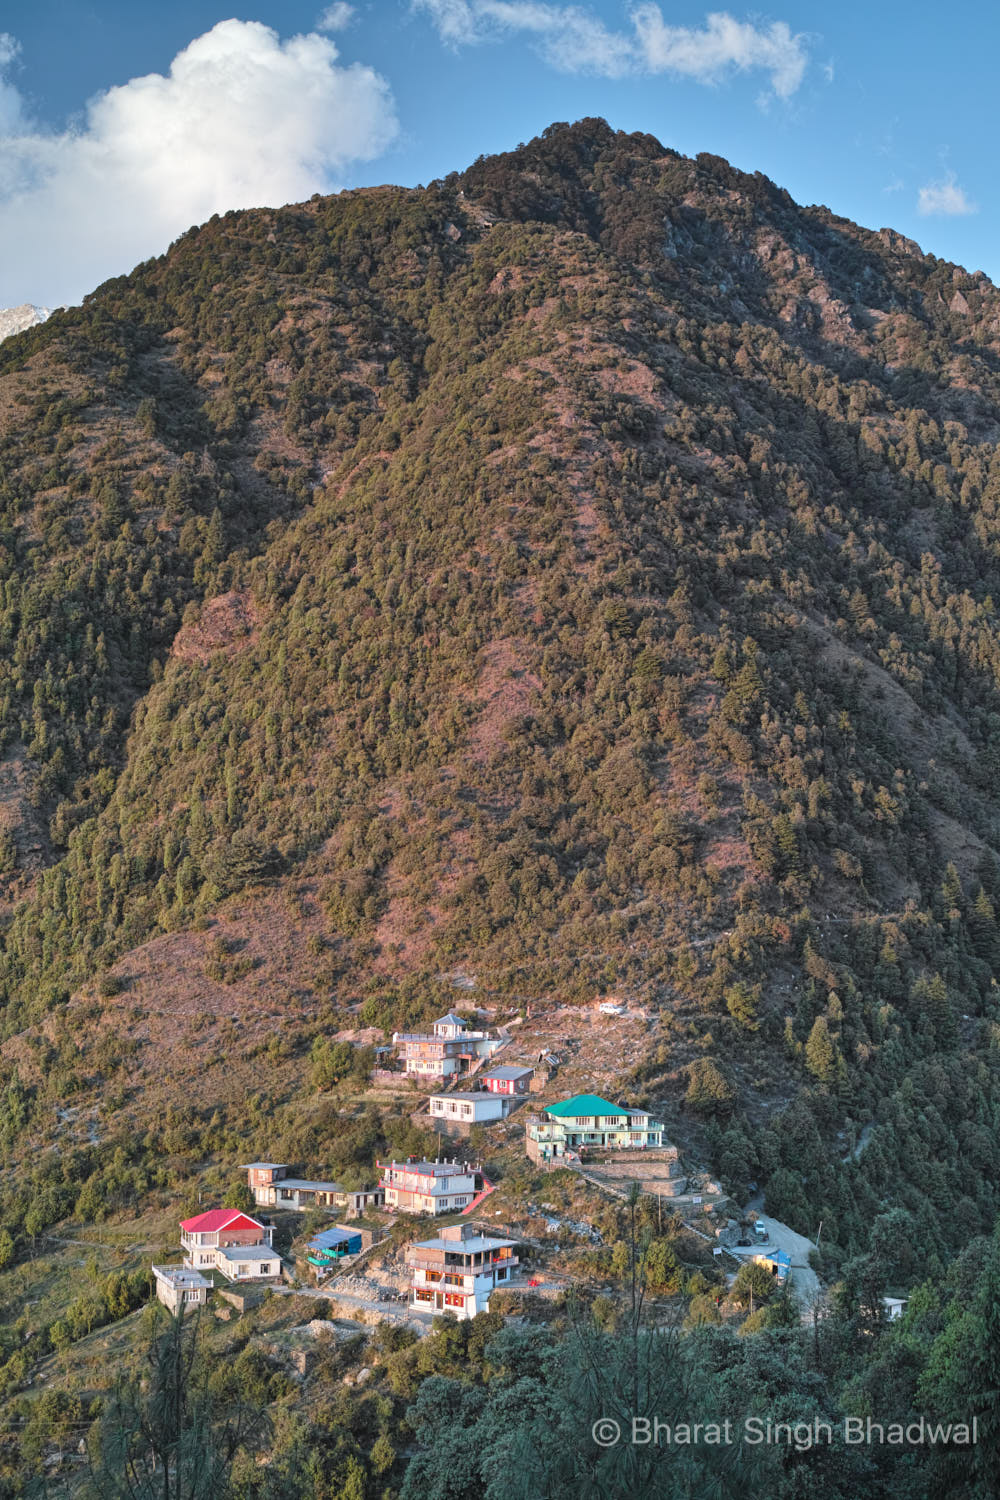 Gallu Temple with its proliferation of Guest Houses, backed by its protective hillock. Two trails are clearly visible. the one on the right leads to  Triund  and the one on the left leads to  Waterfall Cafe .